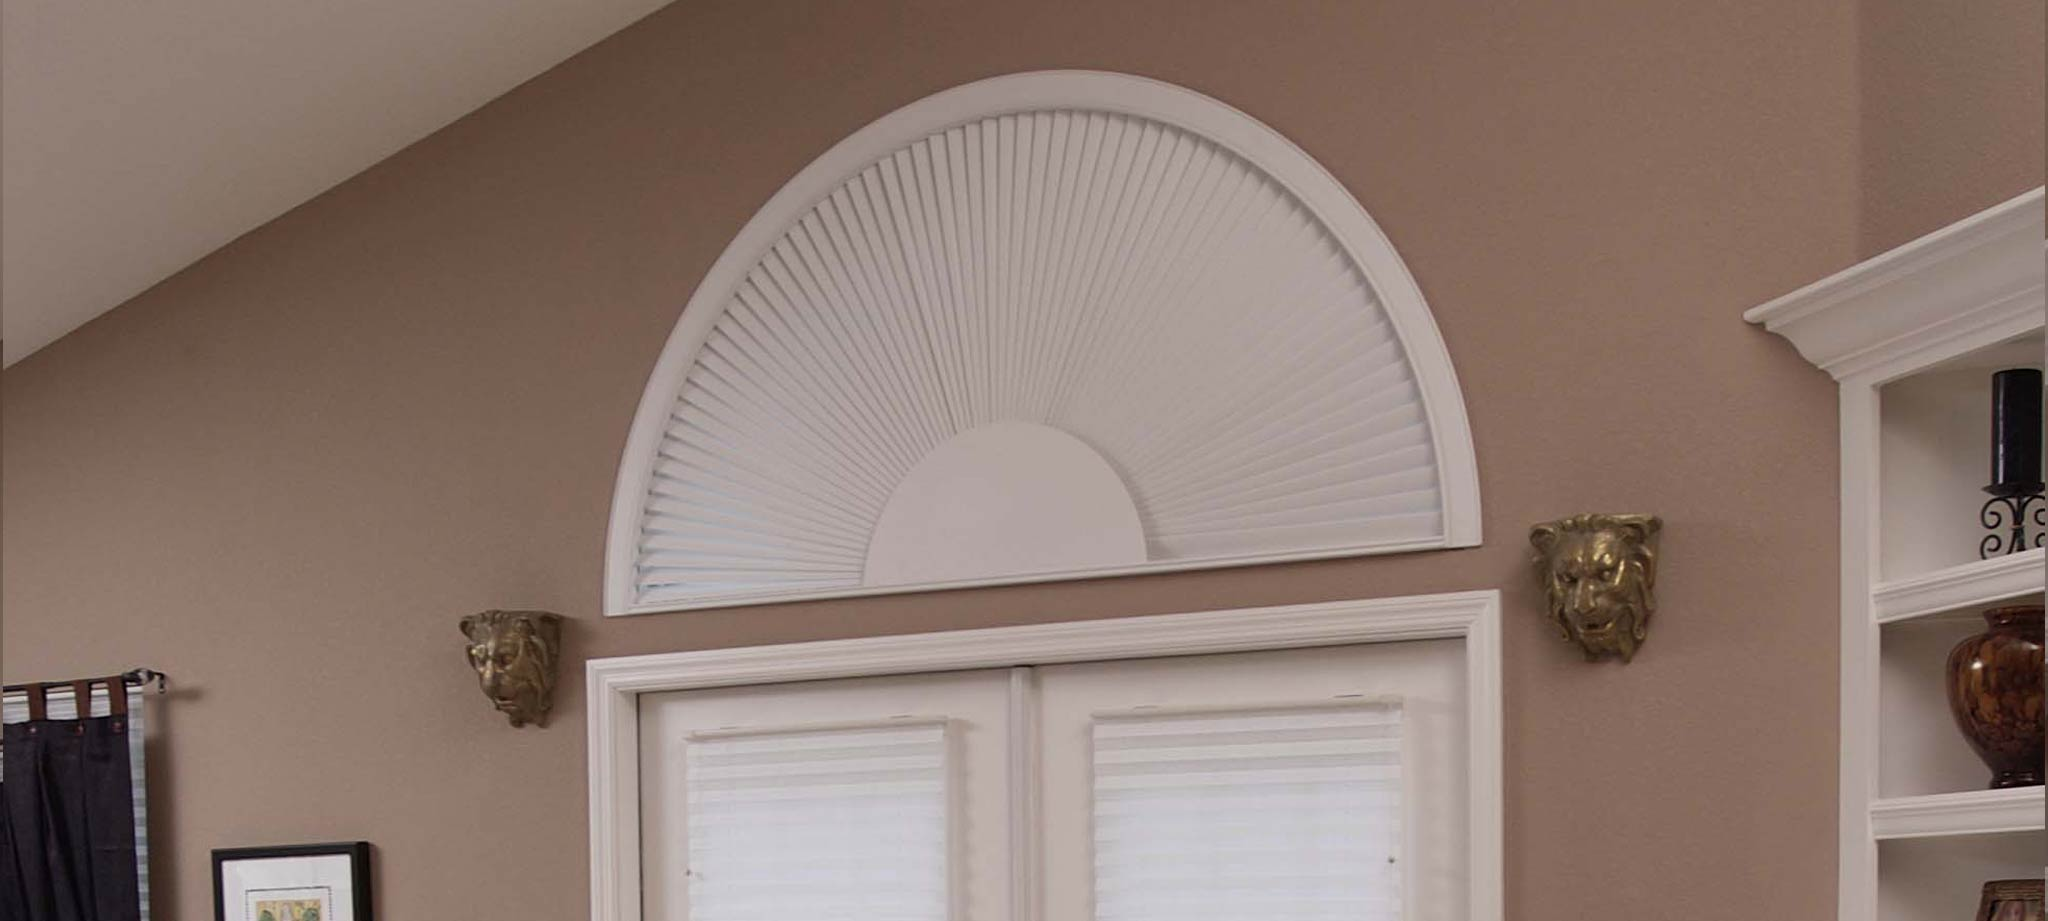 arched window with custom treatment